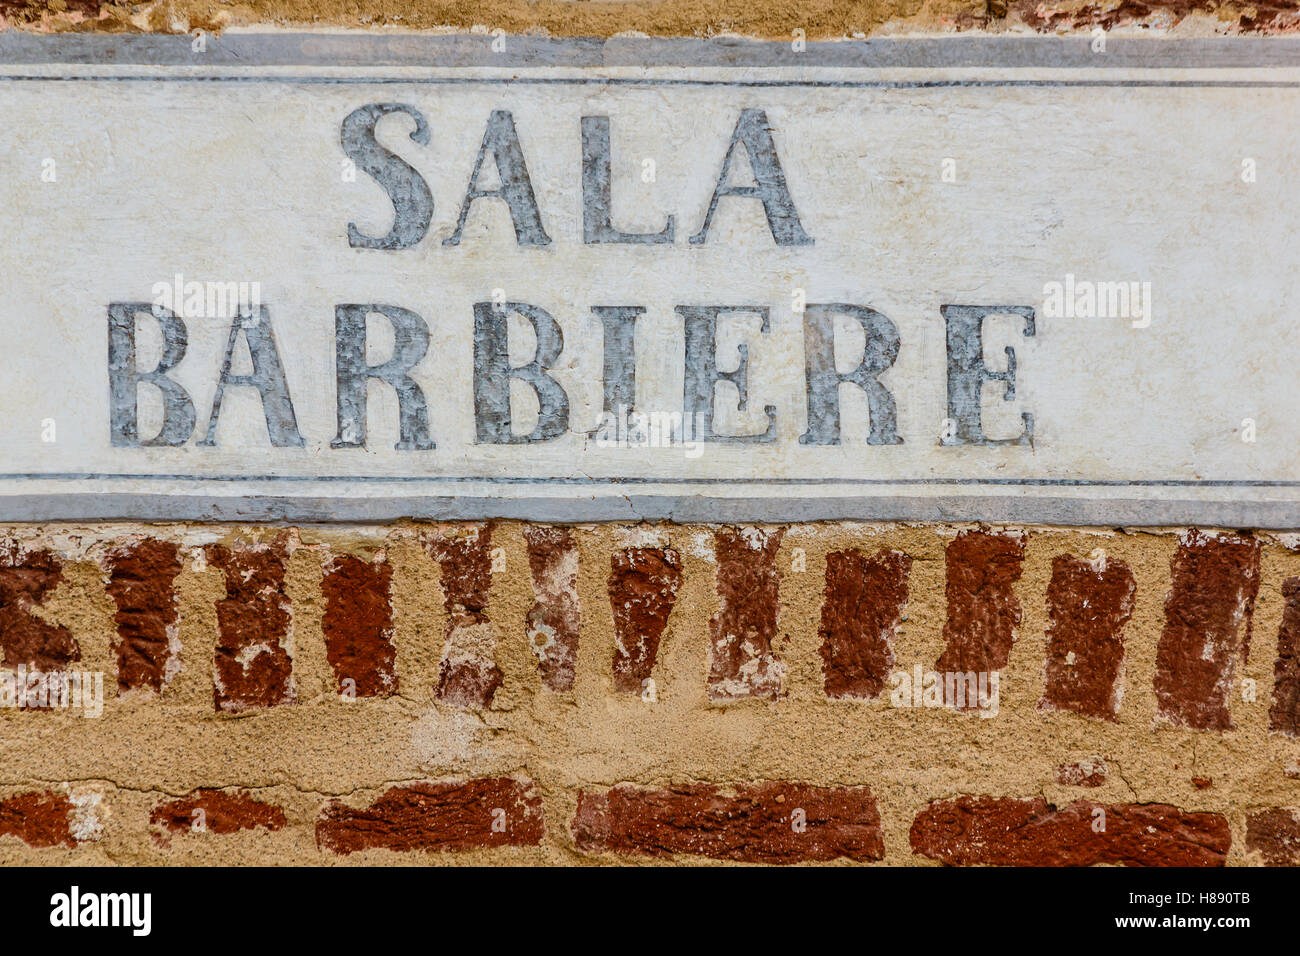 an old sign barber - Stock Image